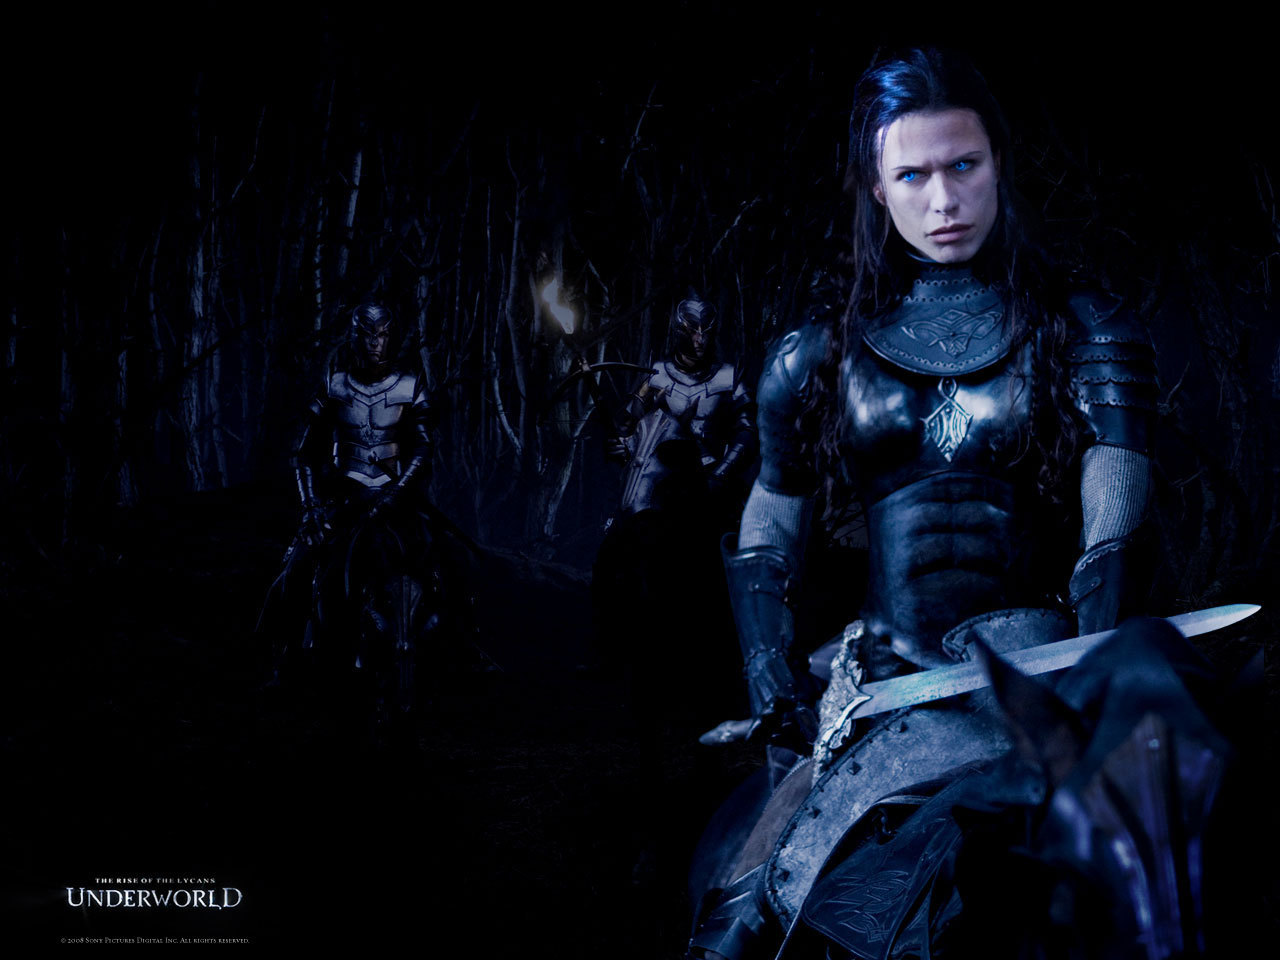 Rise Armor Underworld Lycans